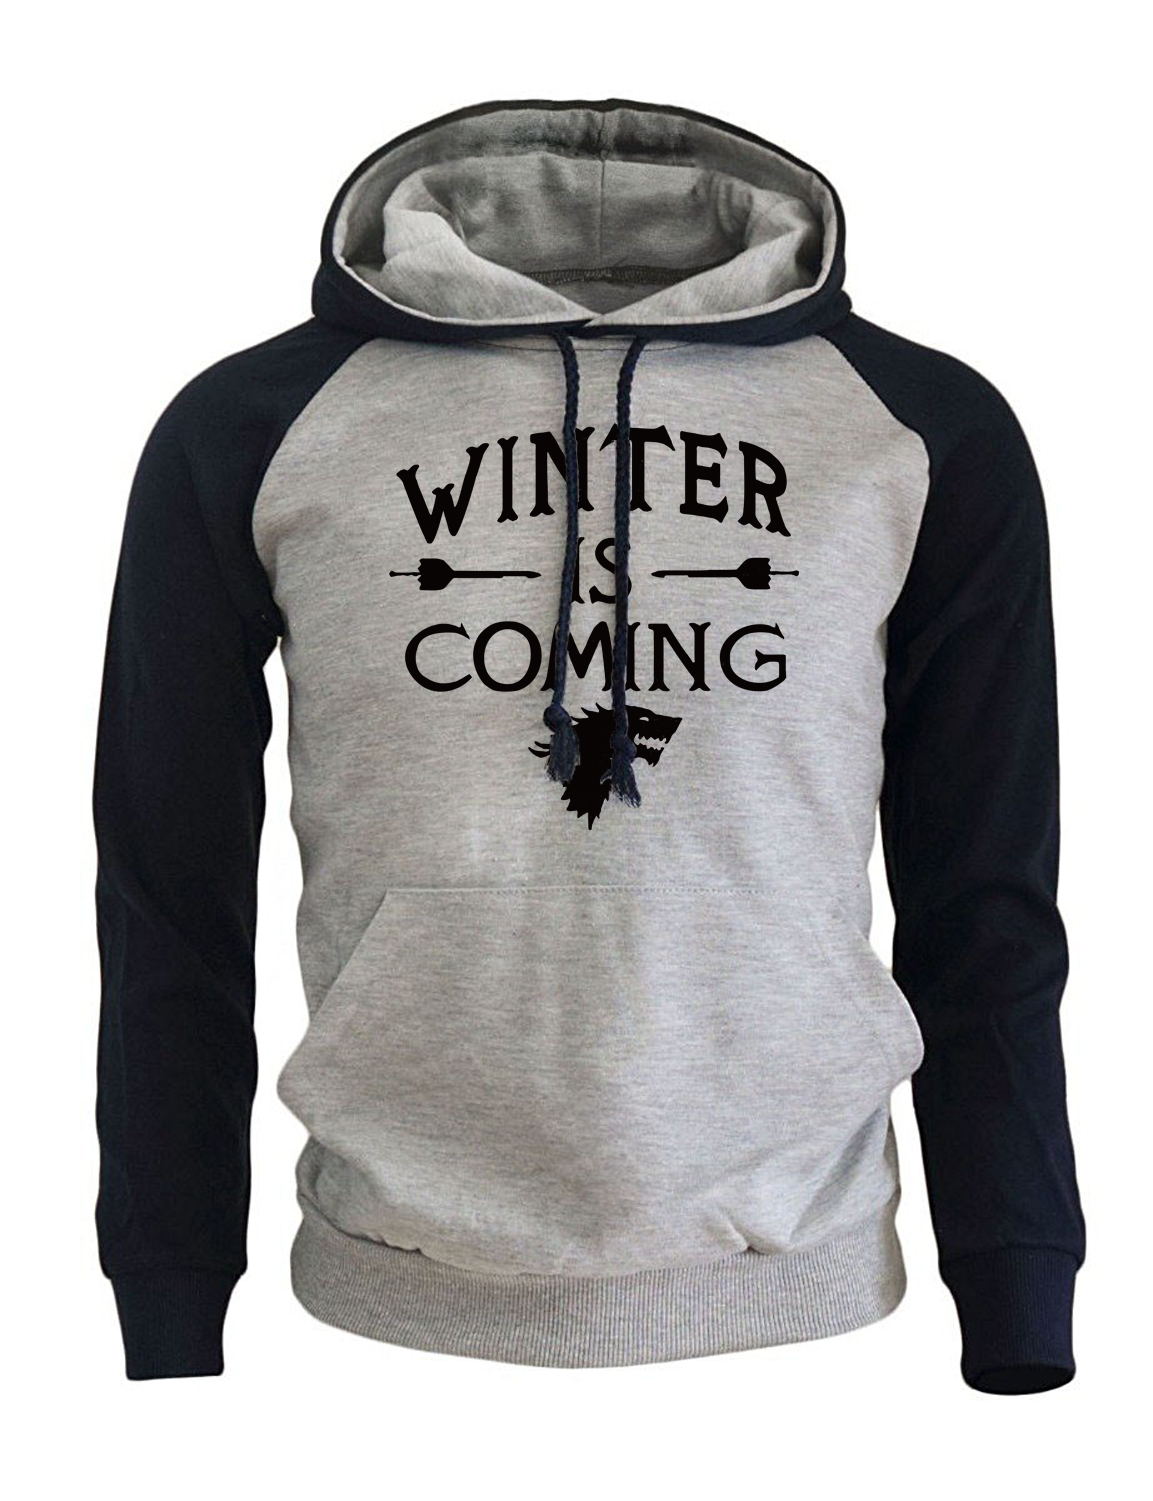 Game Of Thrones Fashion Streetwear Hoodies 2018 Autumn New Arrival Winter Fleece Raglan Sweatshirts Hoody Men Pullovers Brand